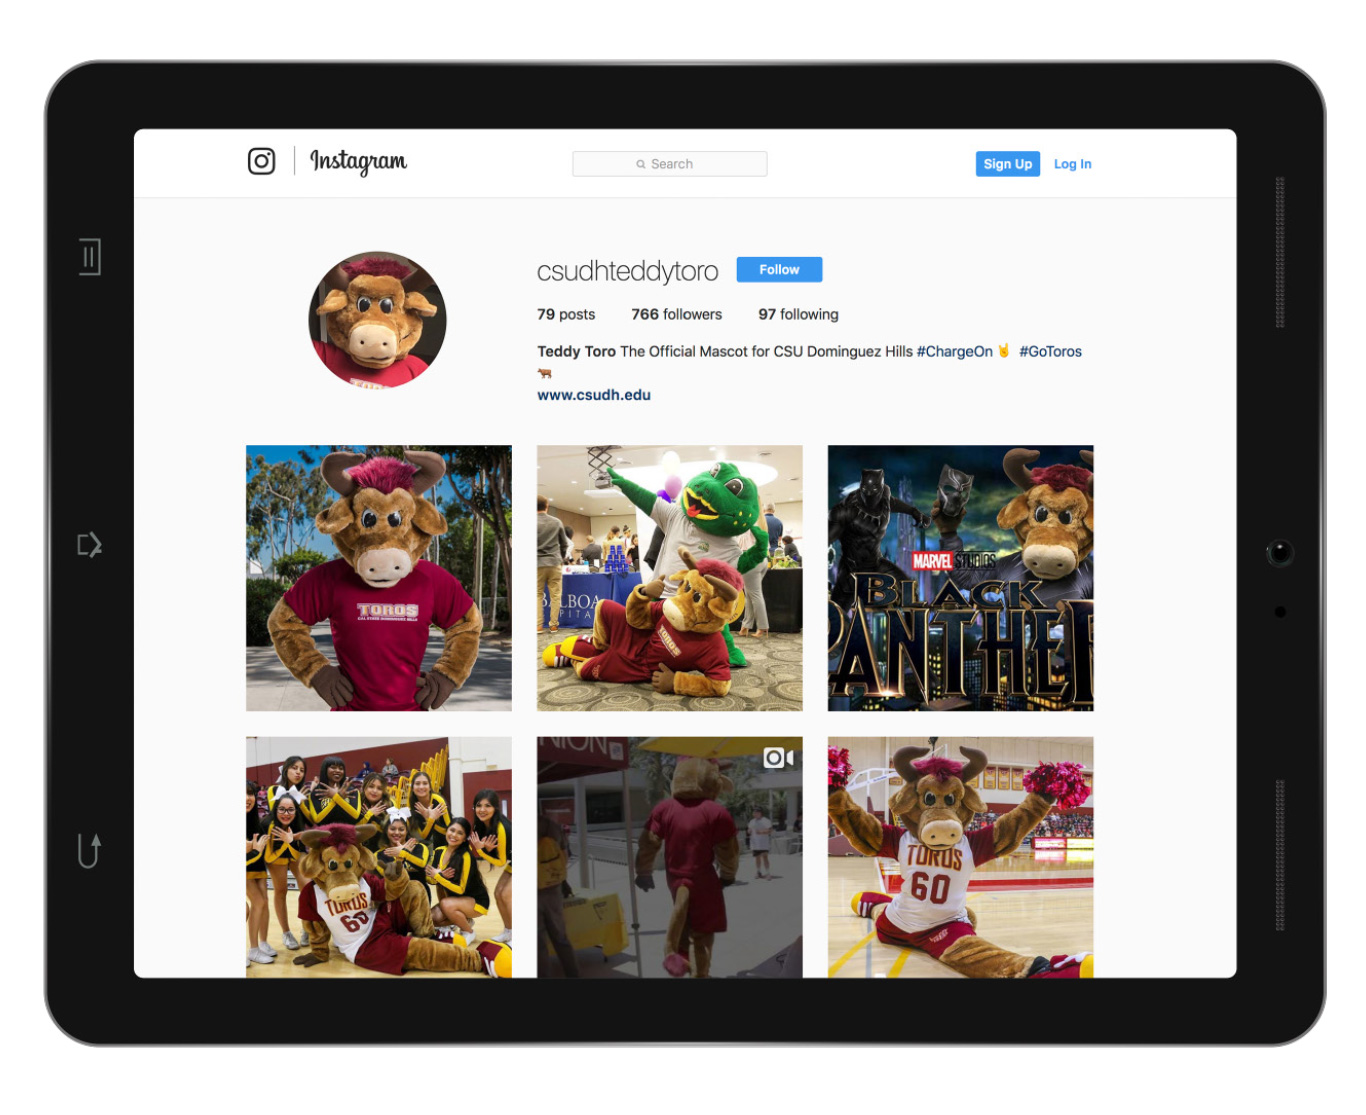 CSUDH Teddy the Toro Instagram page mockup on ipad